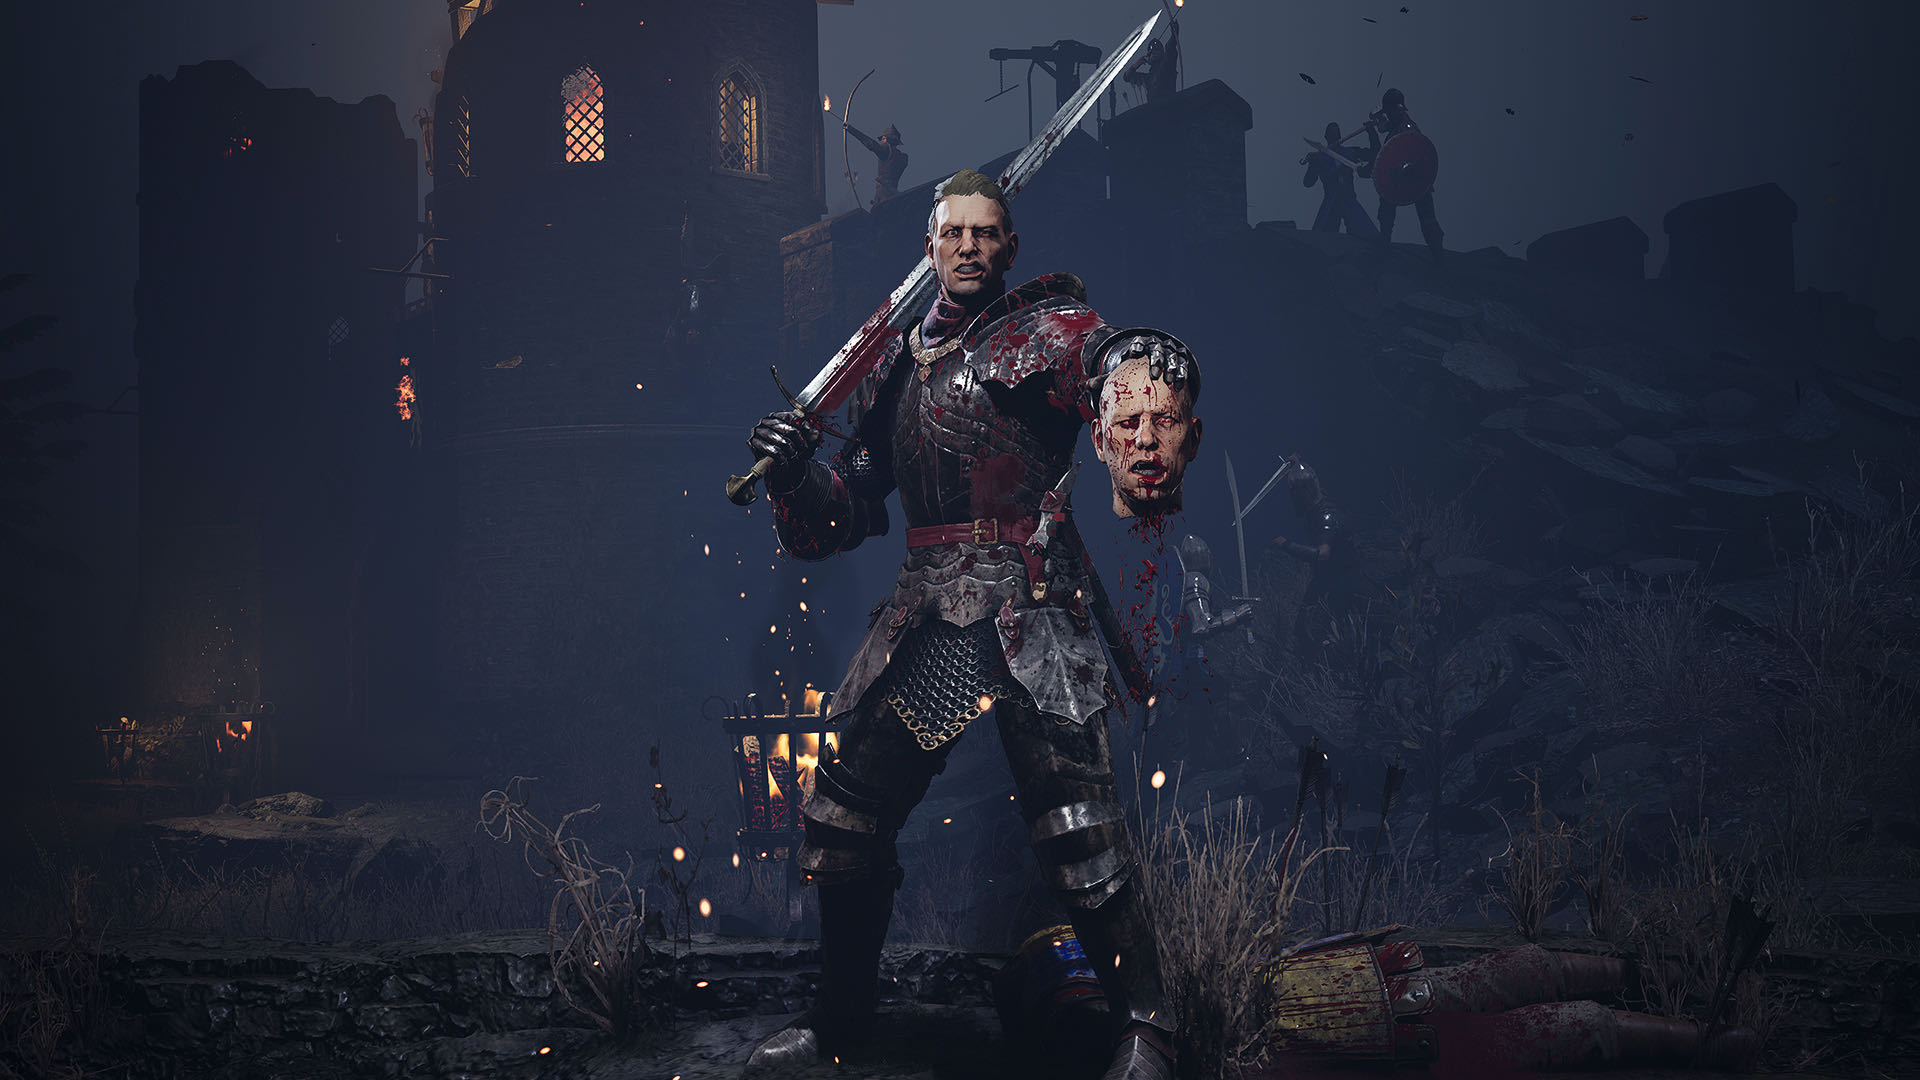 A cinematic shot from Chivalry 2, a triumphant knight holding aloft the severed head of his vanquished foe.